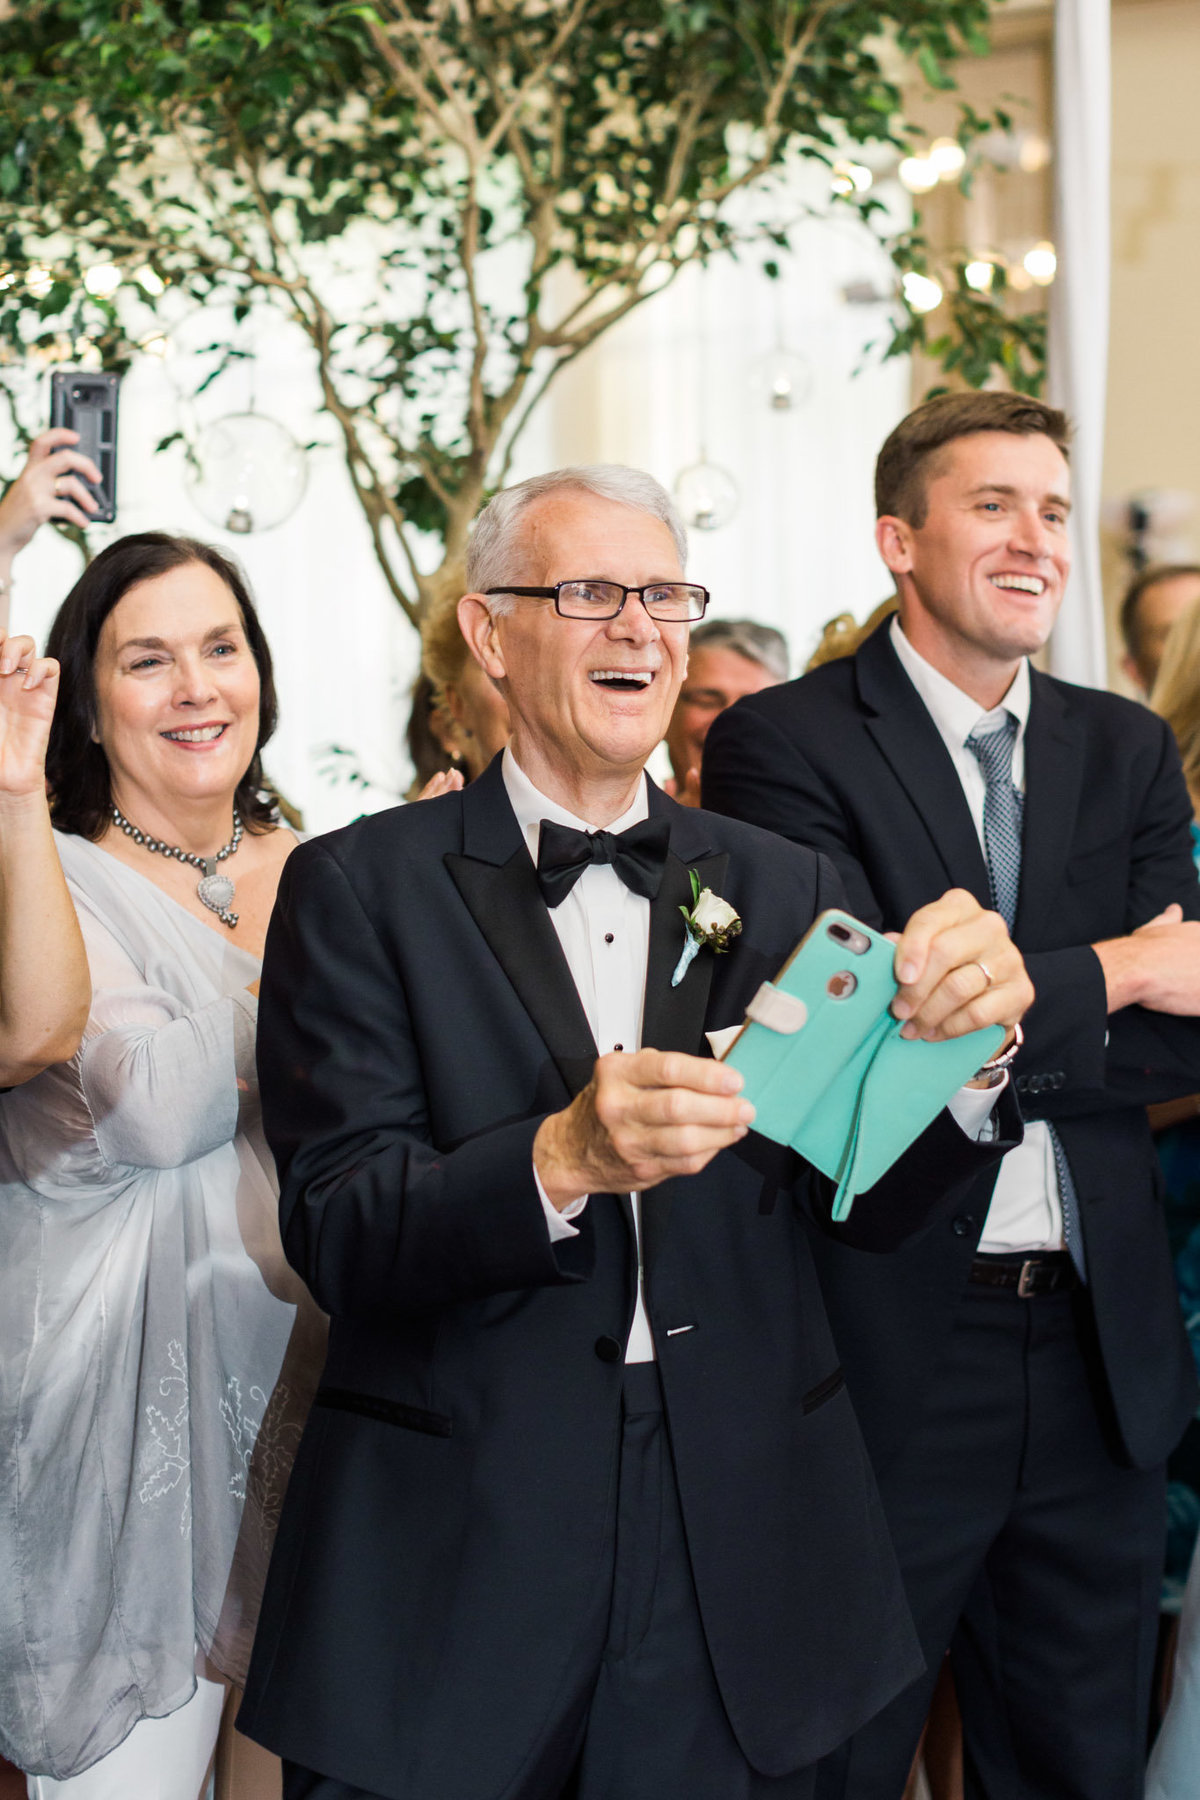 The father of the groom stood in awe as he videoed his wife doing a choreographed surprise dance planned just moments prior. Photo by luxury destination wedding photographer Rebecca Cerasani.